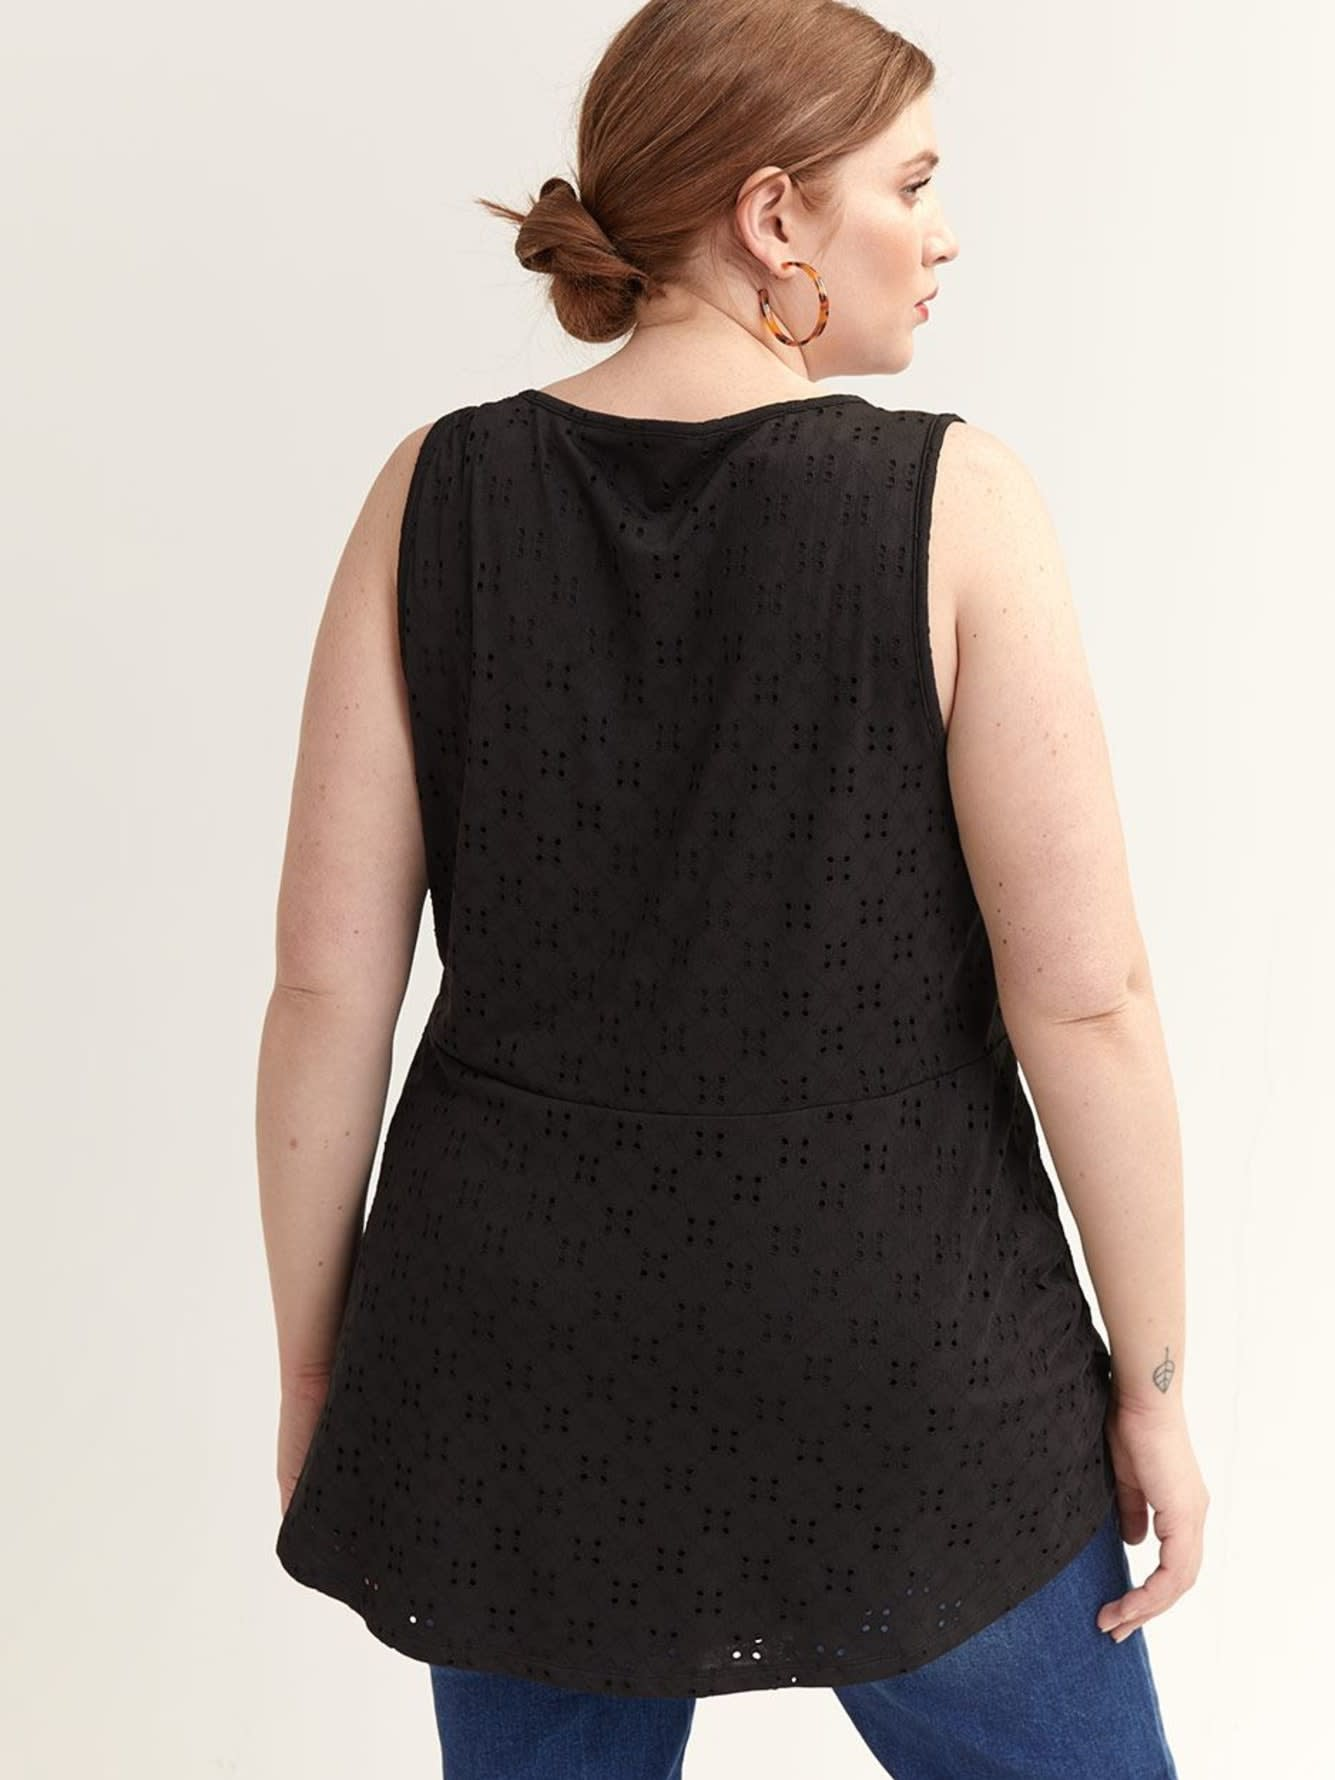 Eyelet Tank Top with Flounce